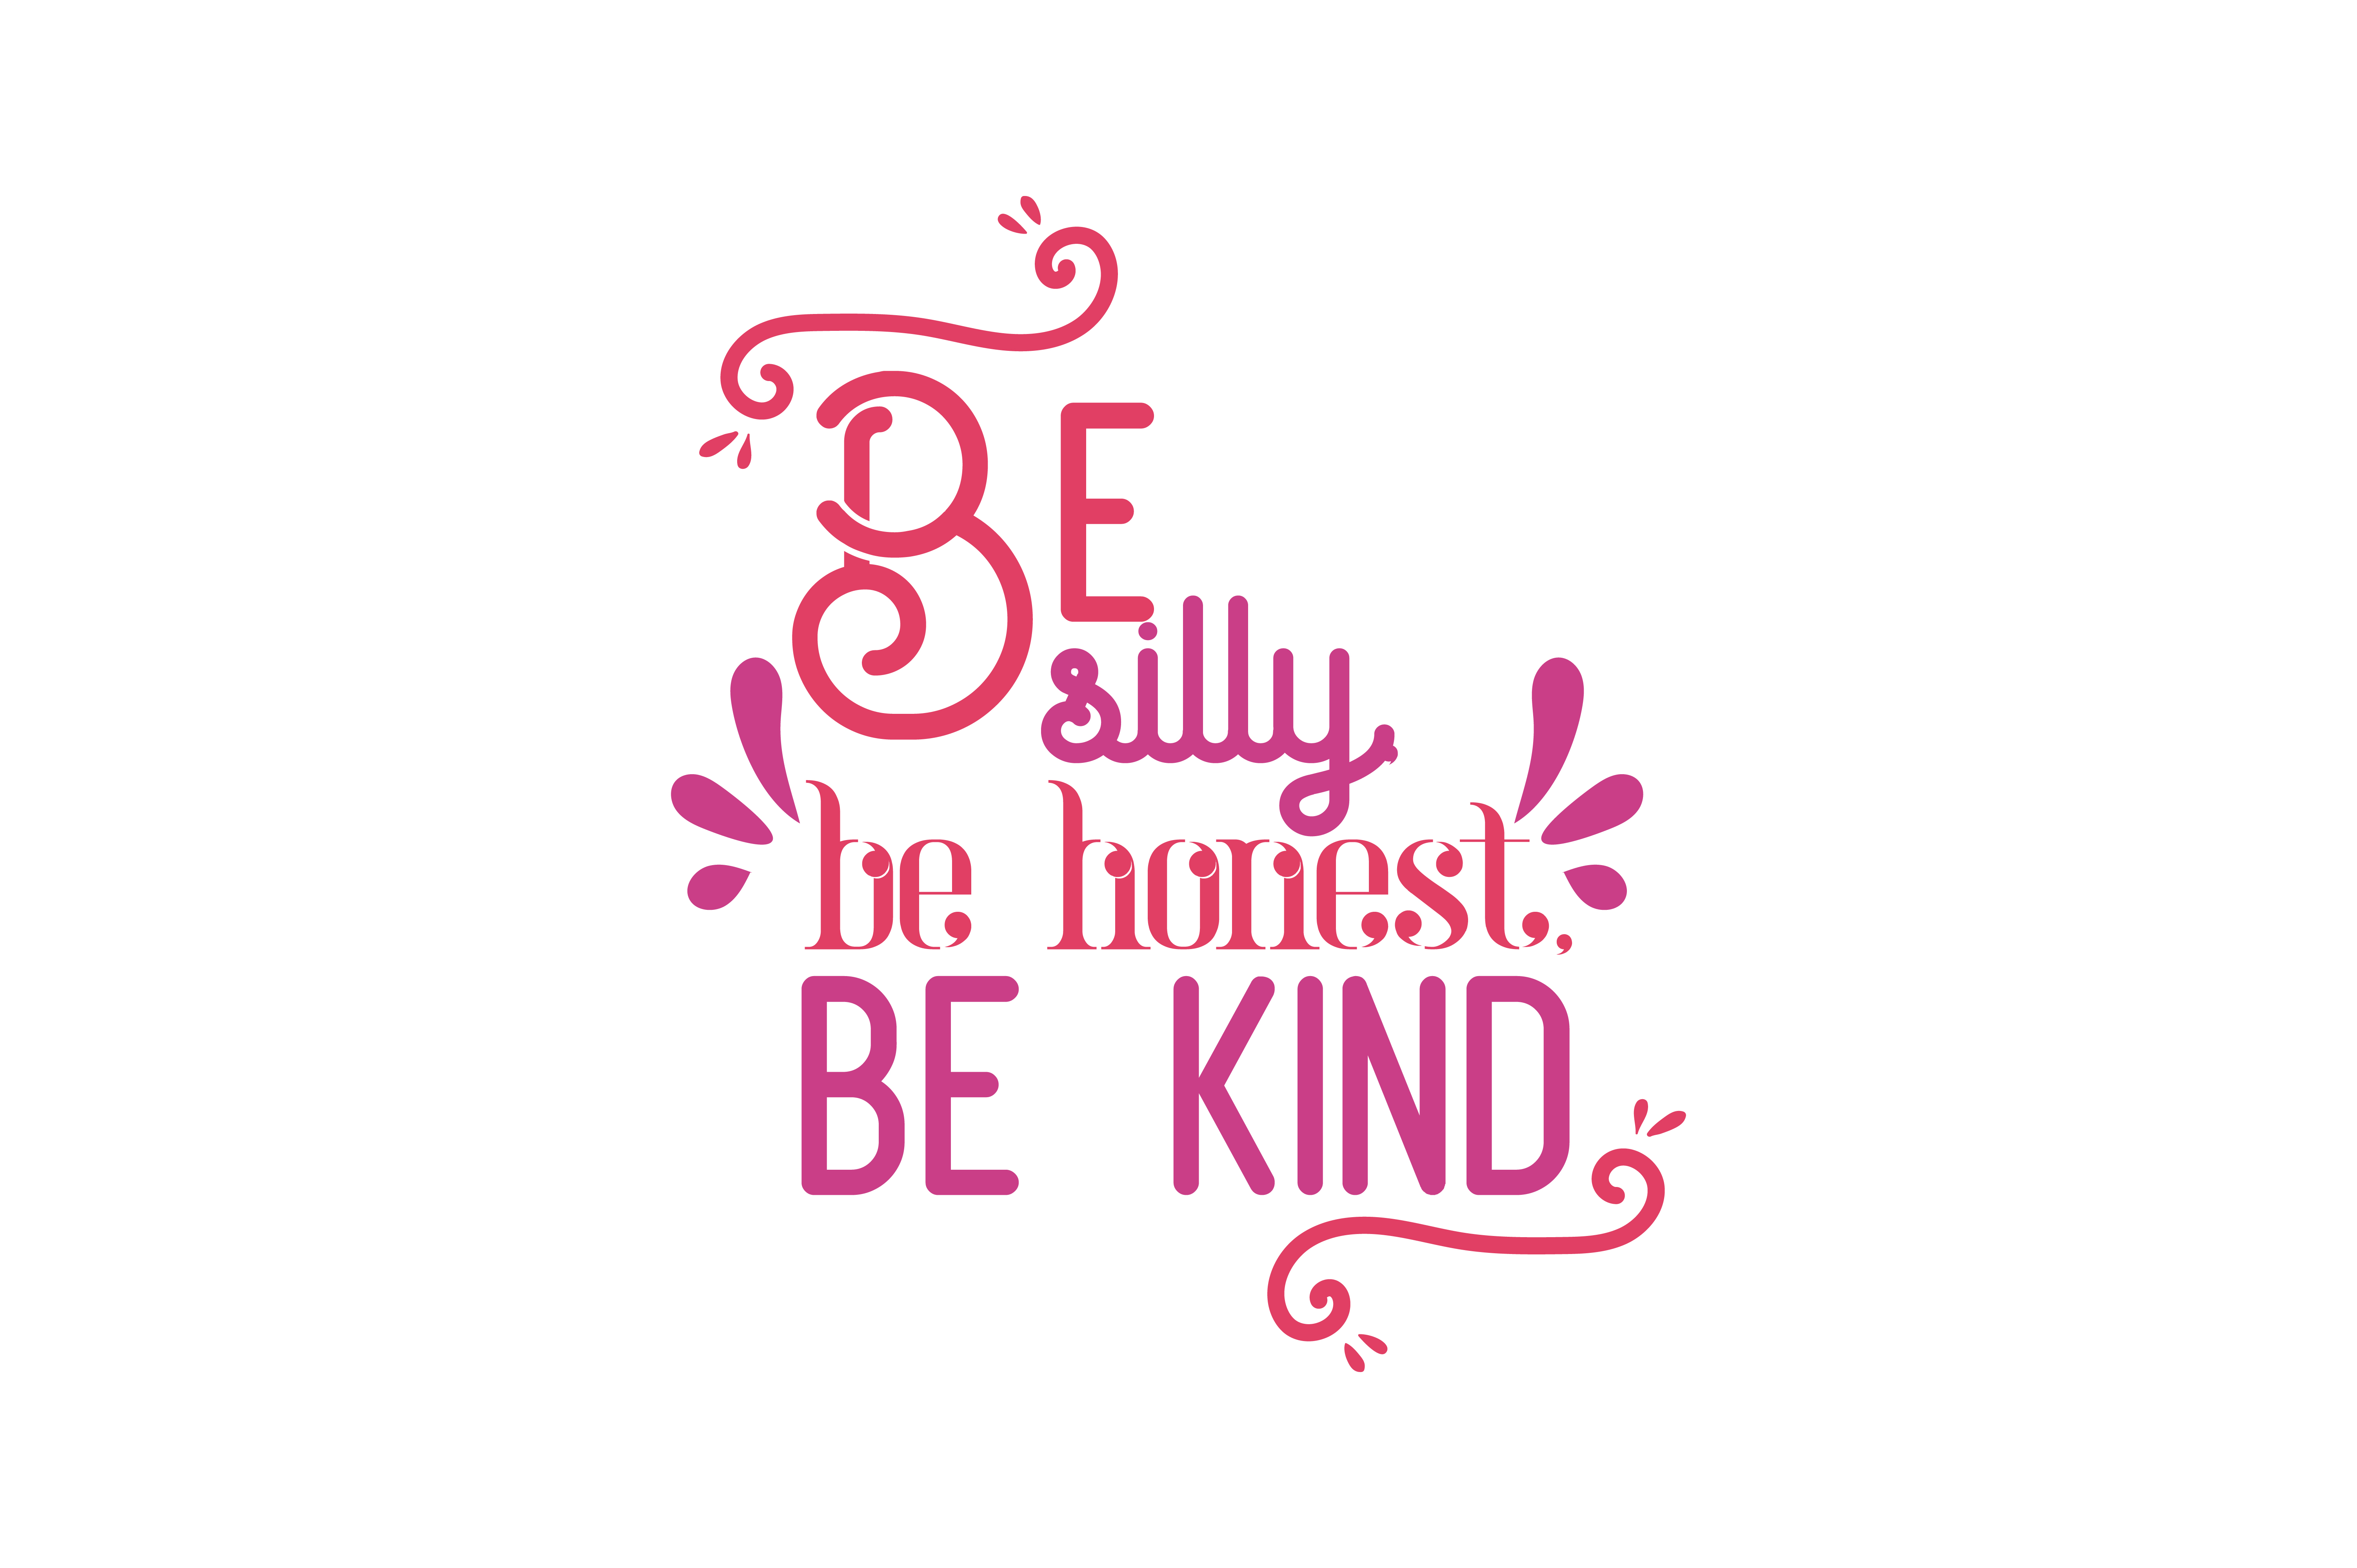 Download Free Be Silly Be Honest Be Kind Svg Cut Quote Graphic By Thelucky for Cricut Explore, Silhouette and other cutting machines.